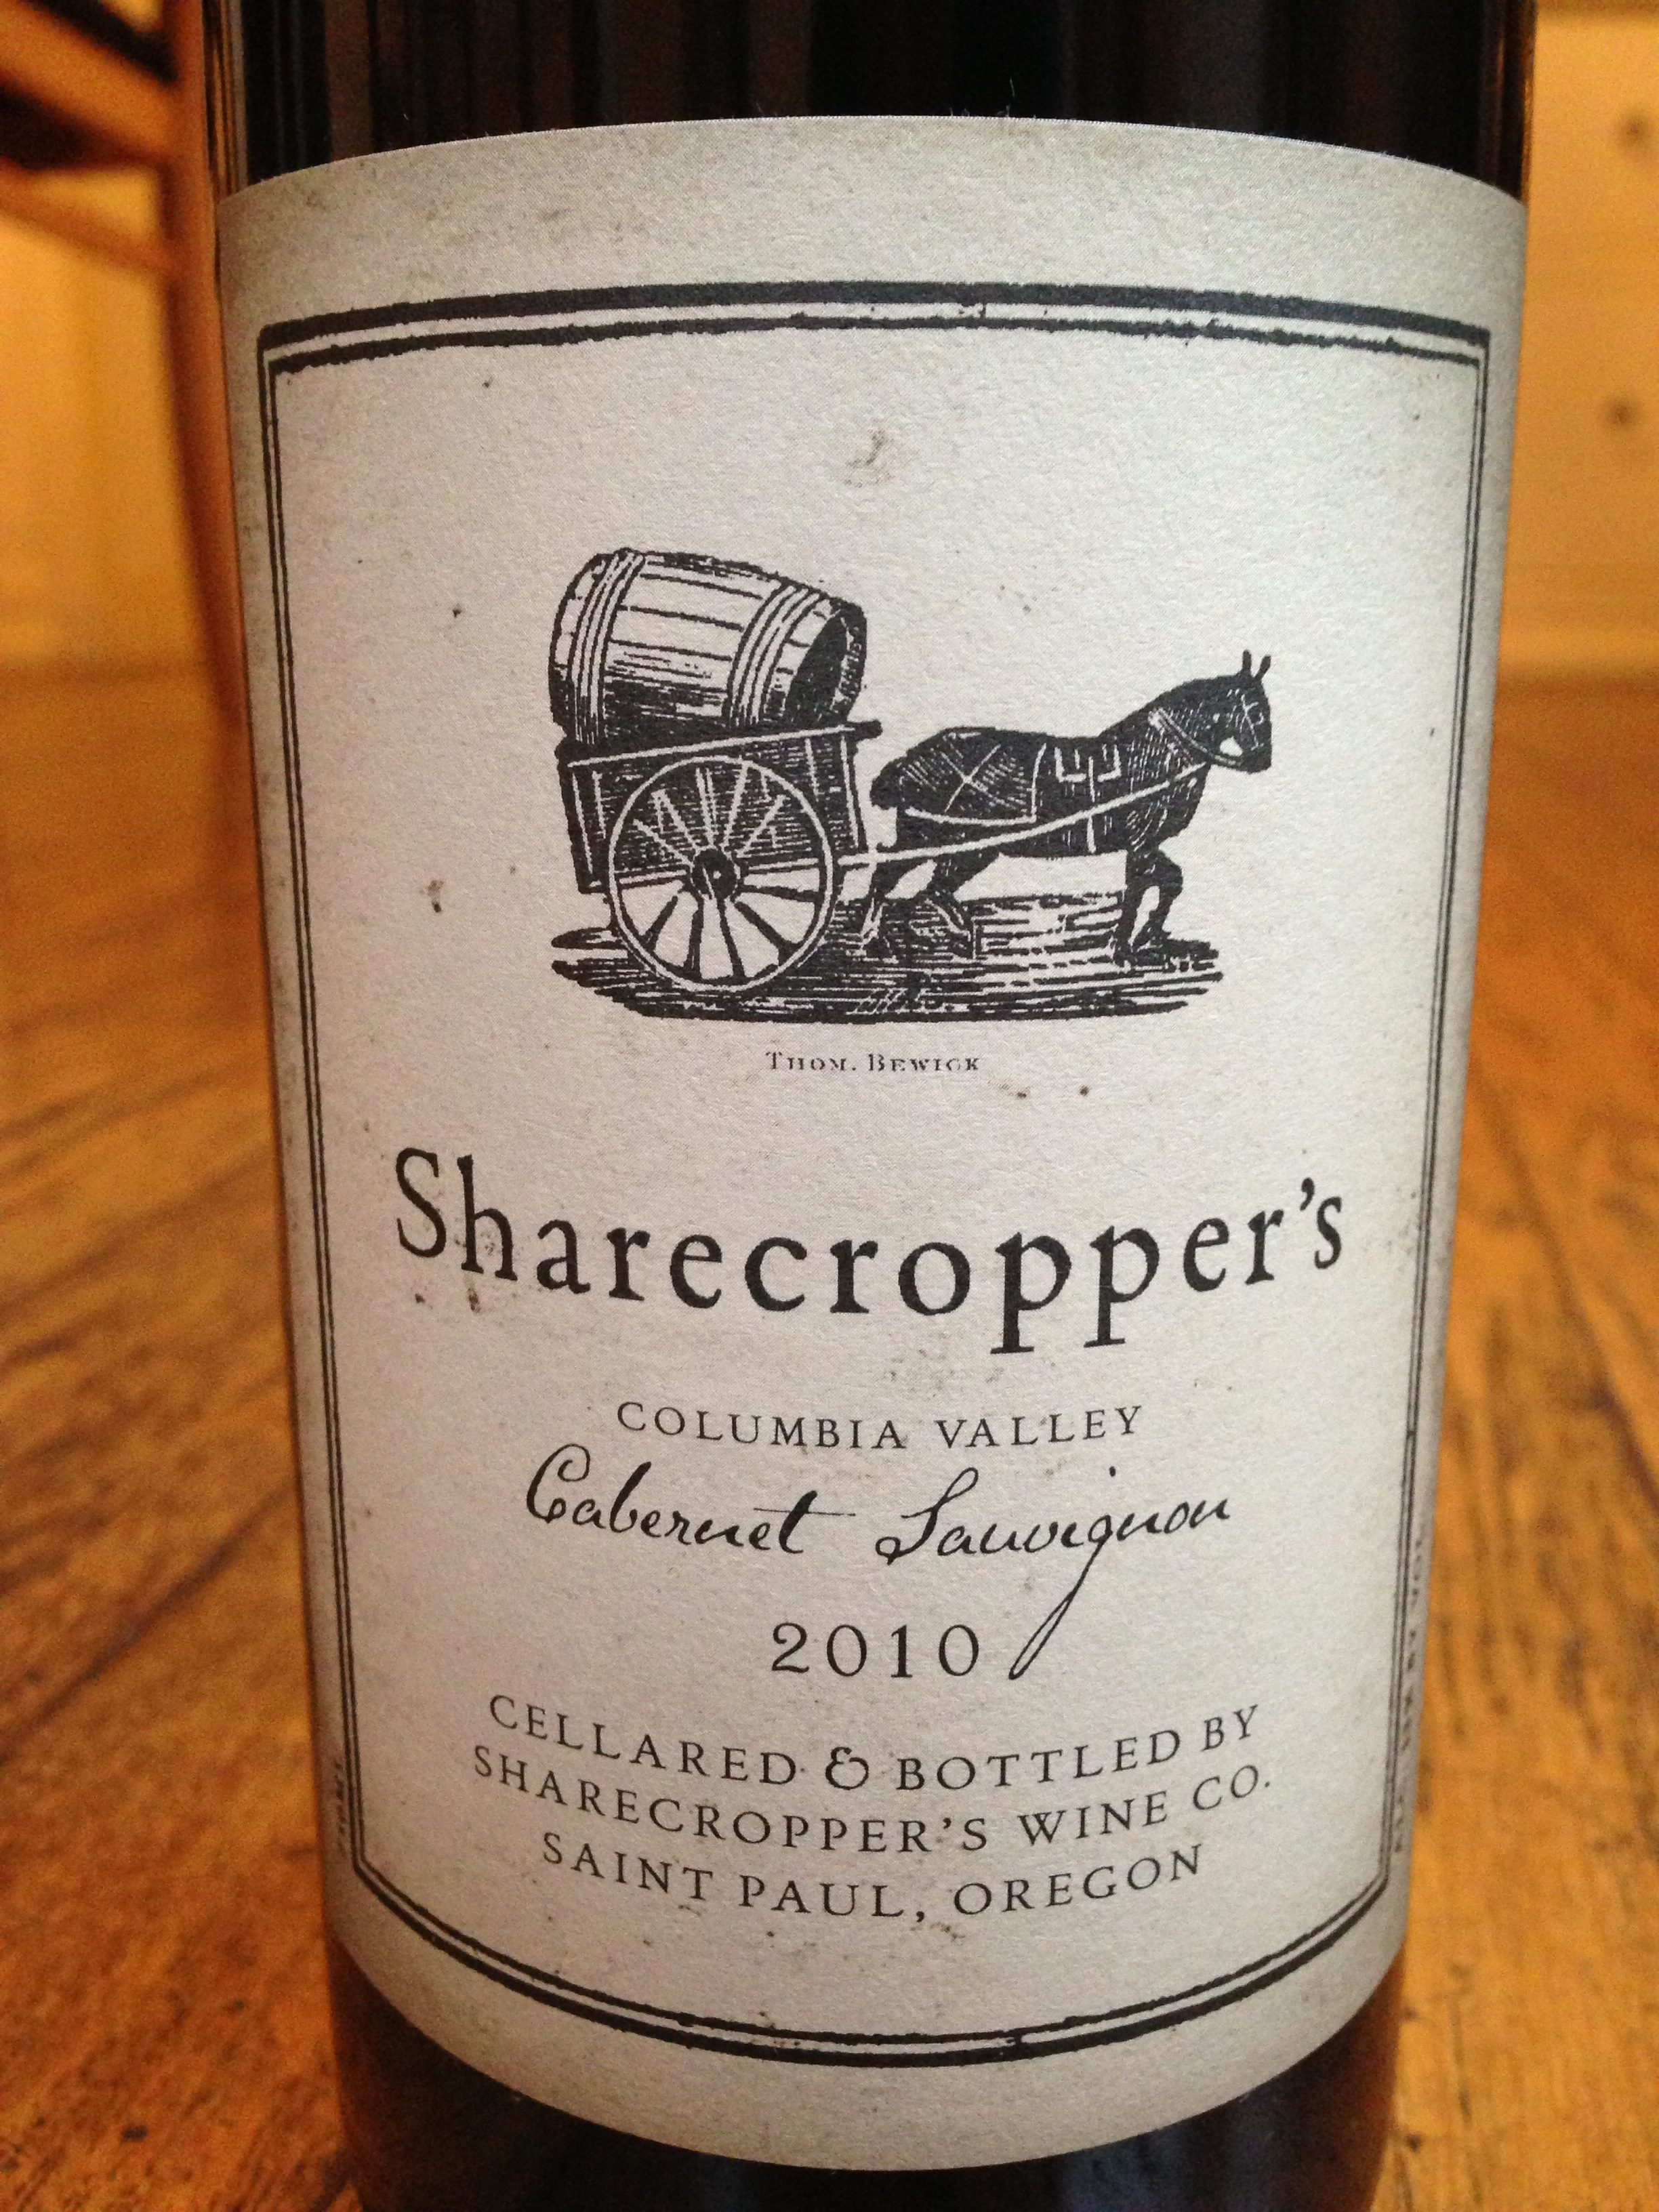 Owen Roe 2010 Sharecropper's Cabernet Sauvignon - Wine Review